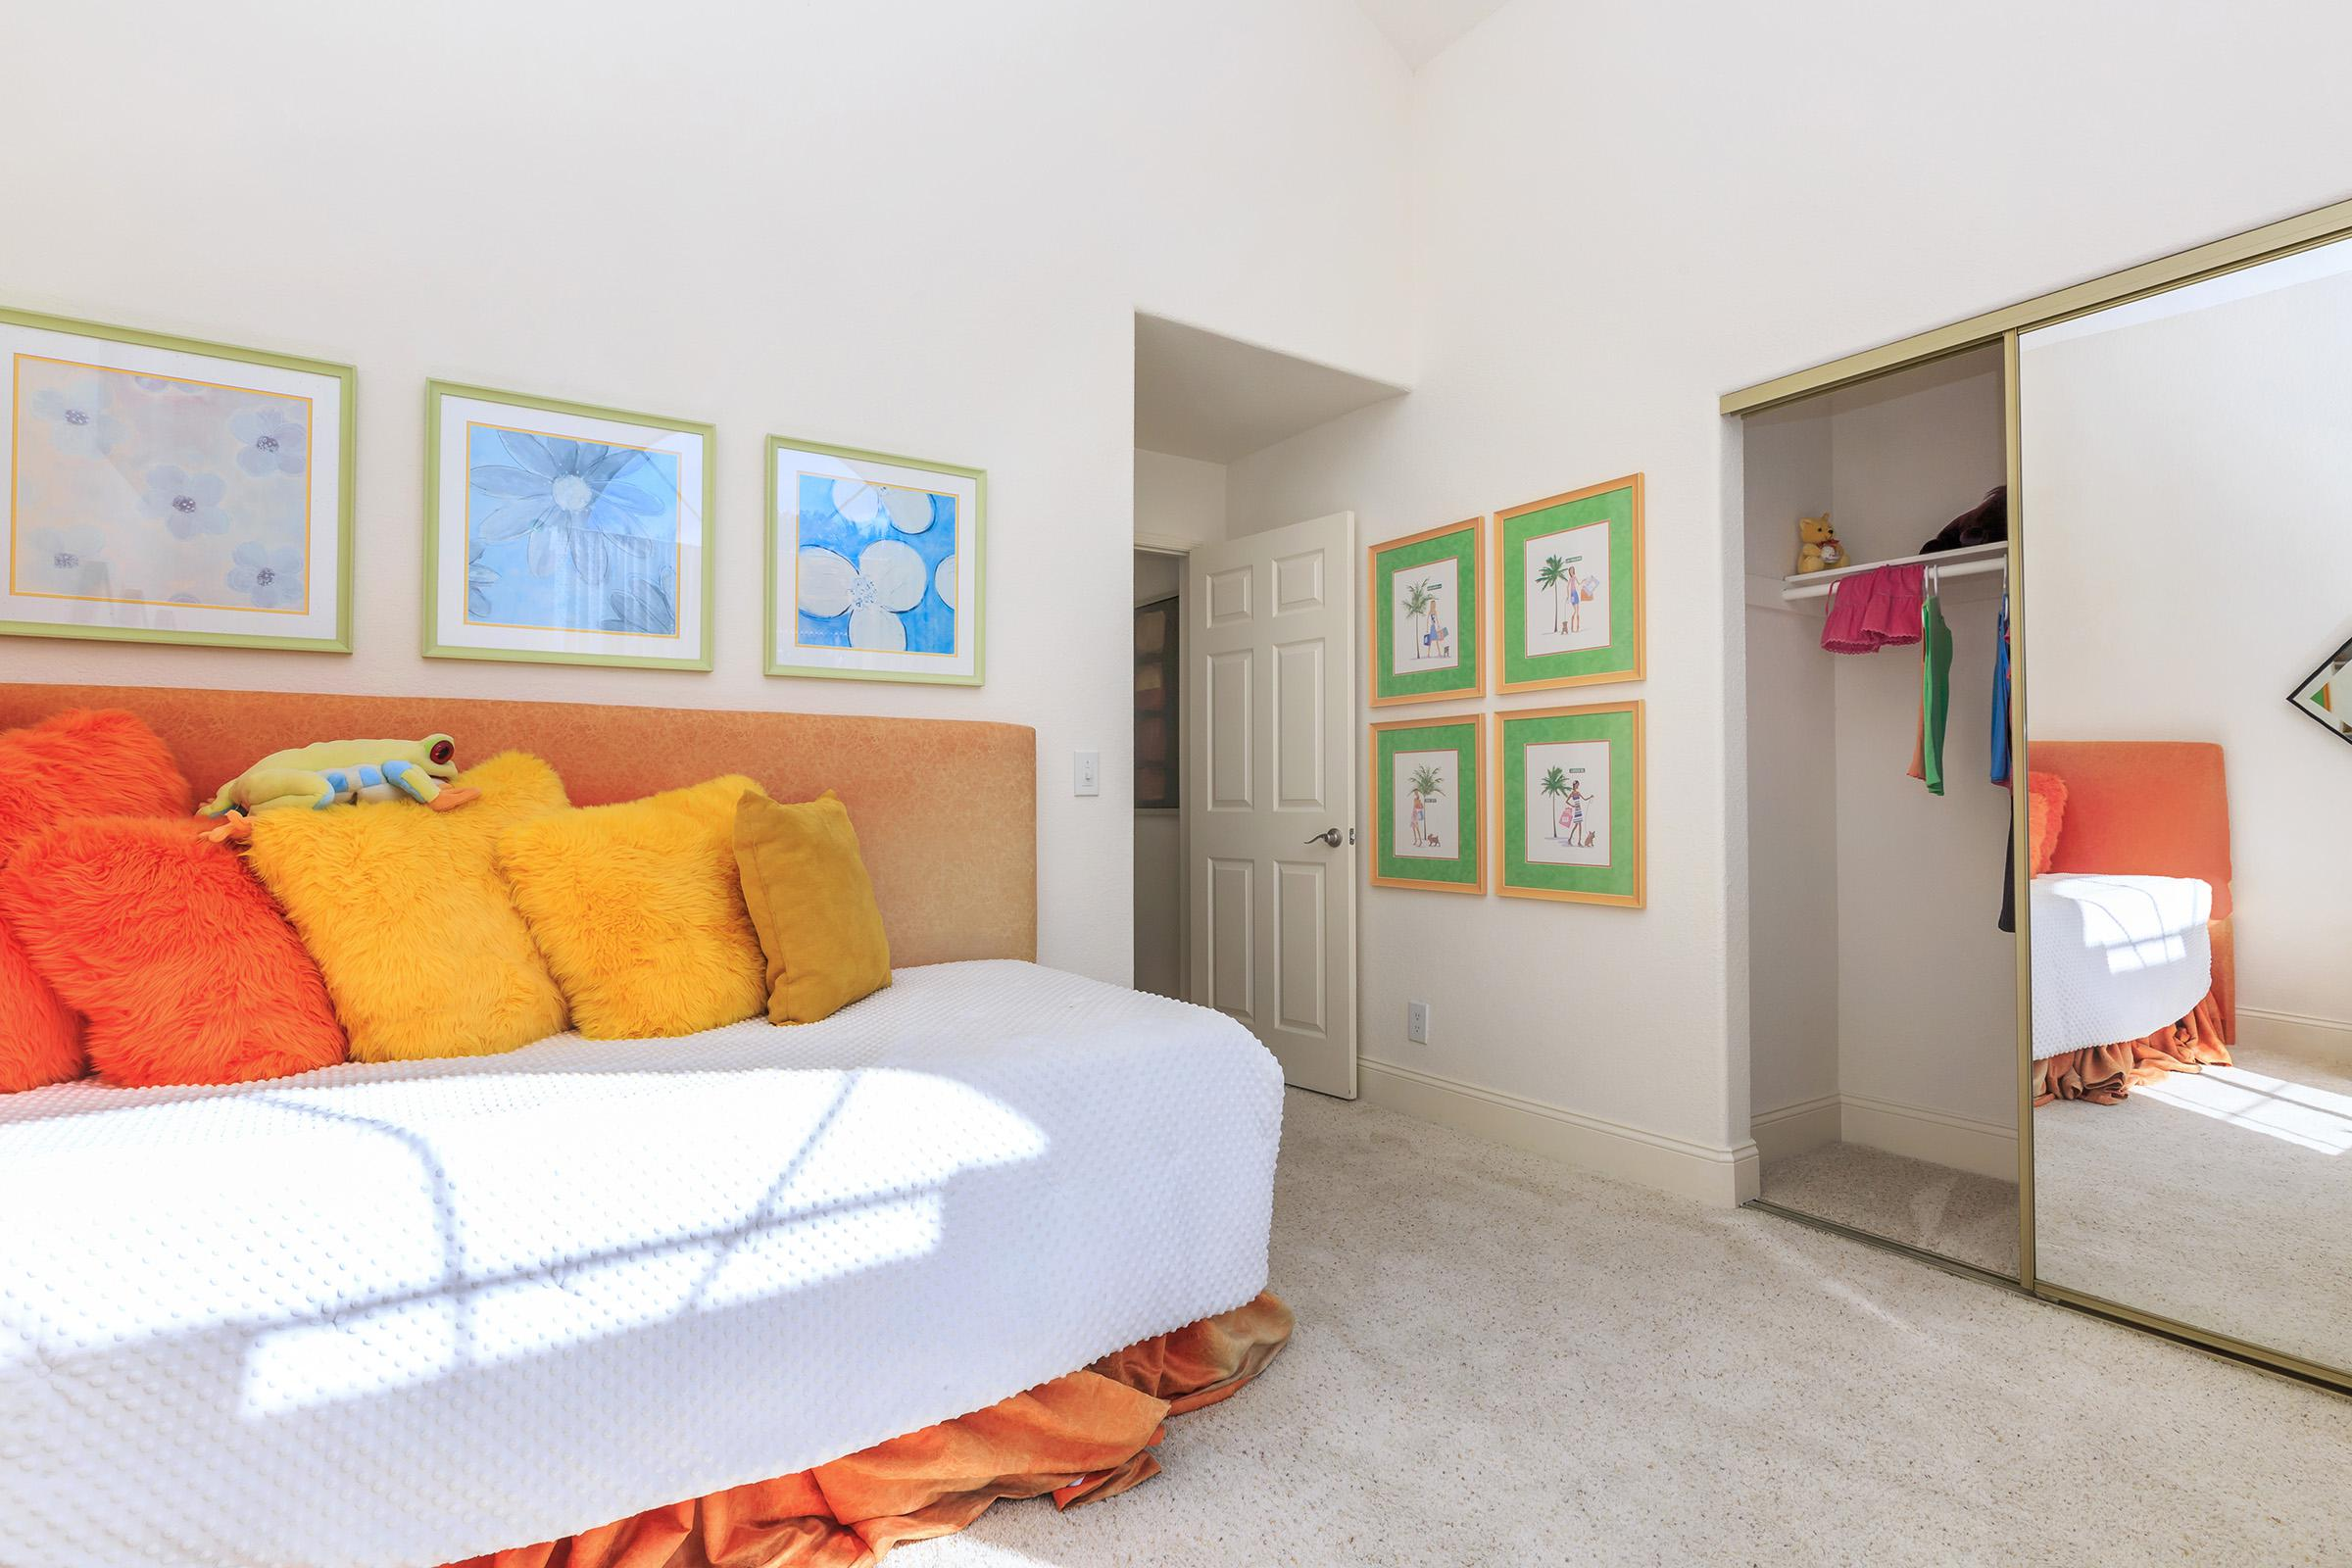 a bedroom with a stuffed animal on a bed